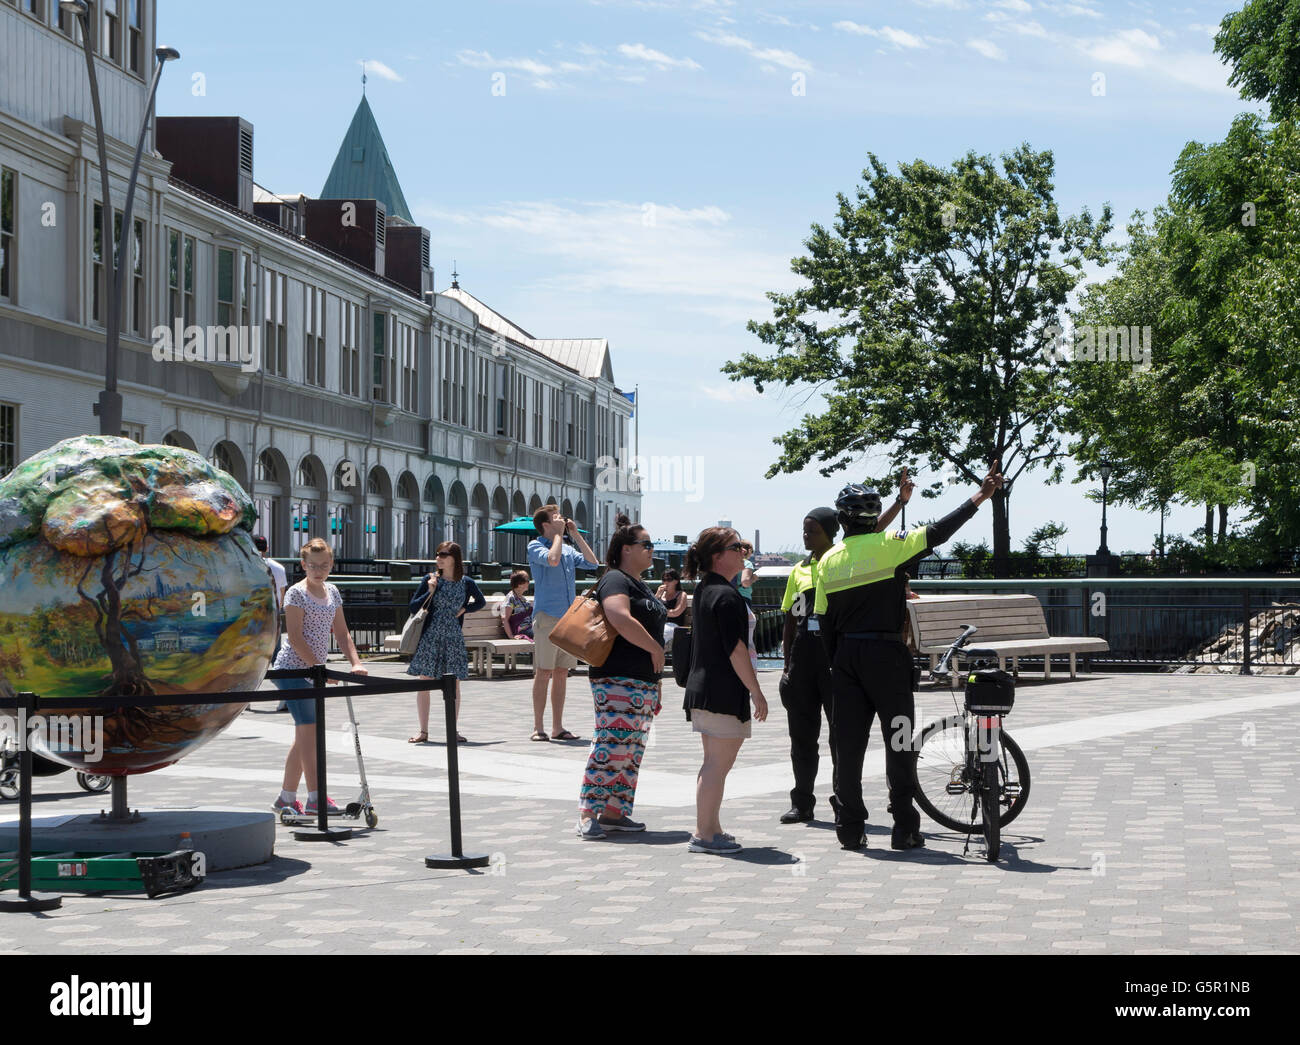 Two Battery Park City (BPC) Ambassadors helping tourists with directions near Pier A, Battery Park, New York. - Stock Image